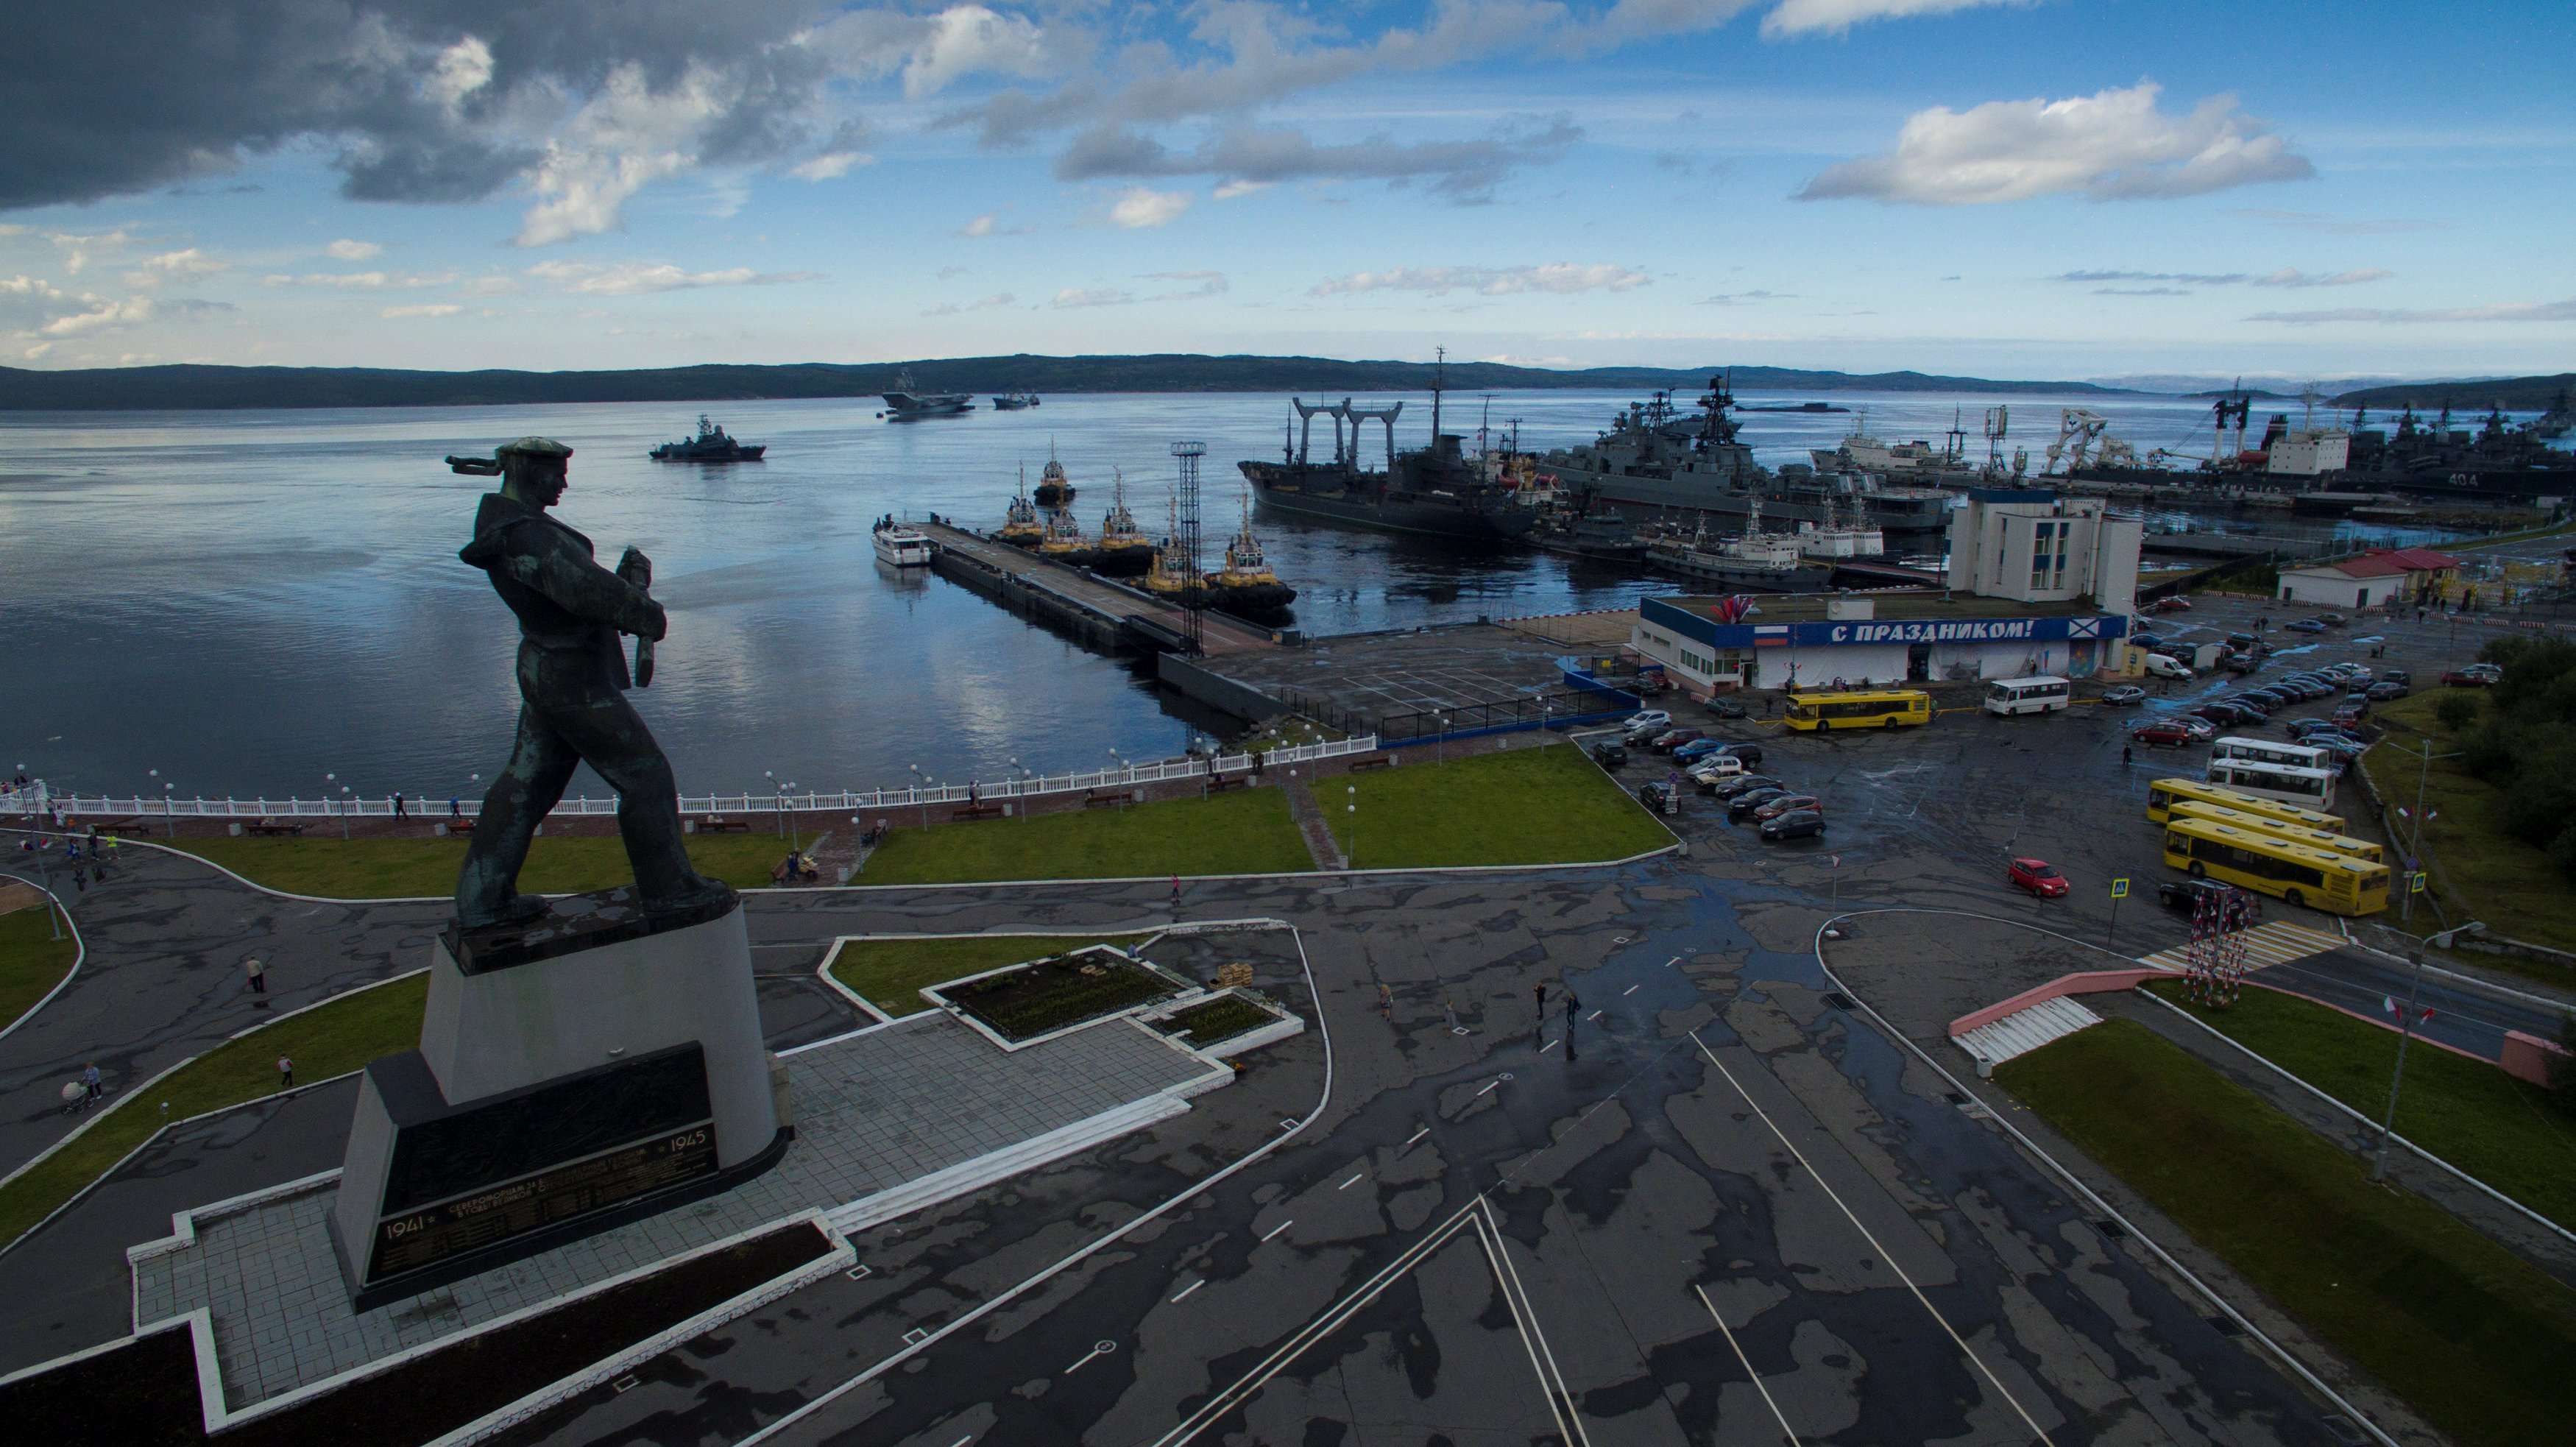 Russia sets out stringent new rules for foreign ships on the Northern Sea Route